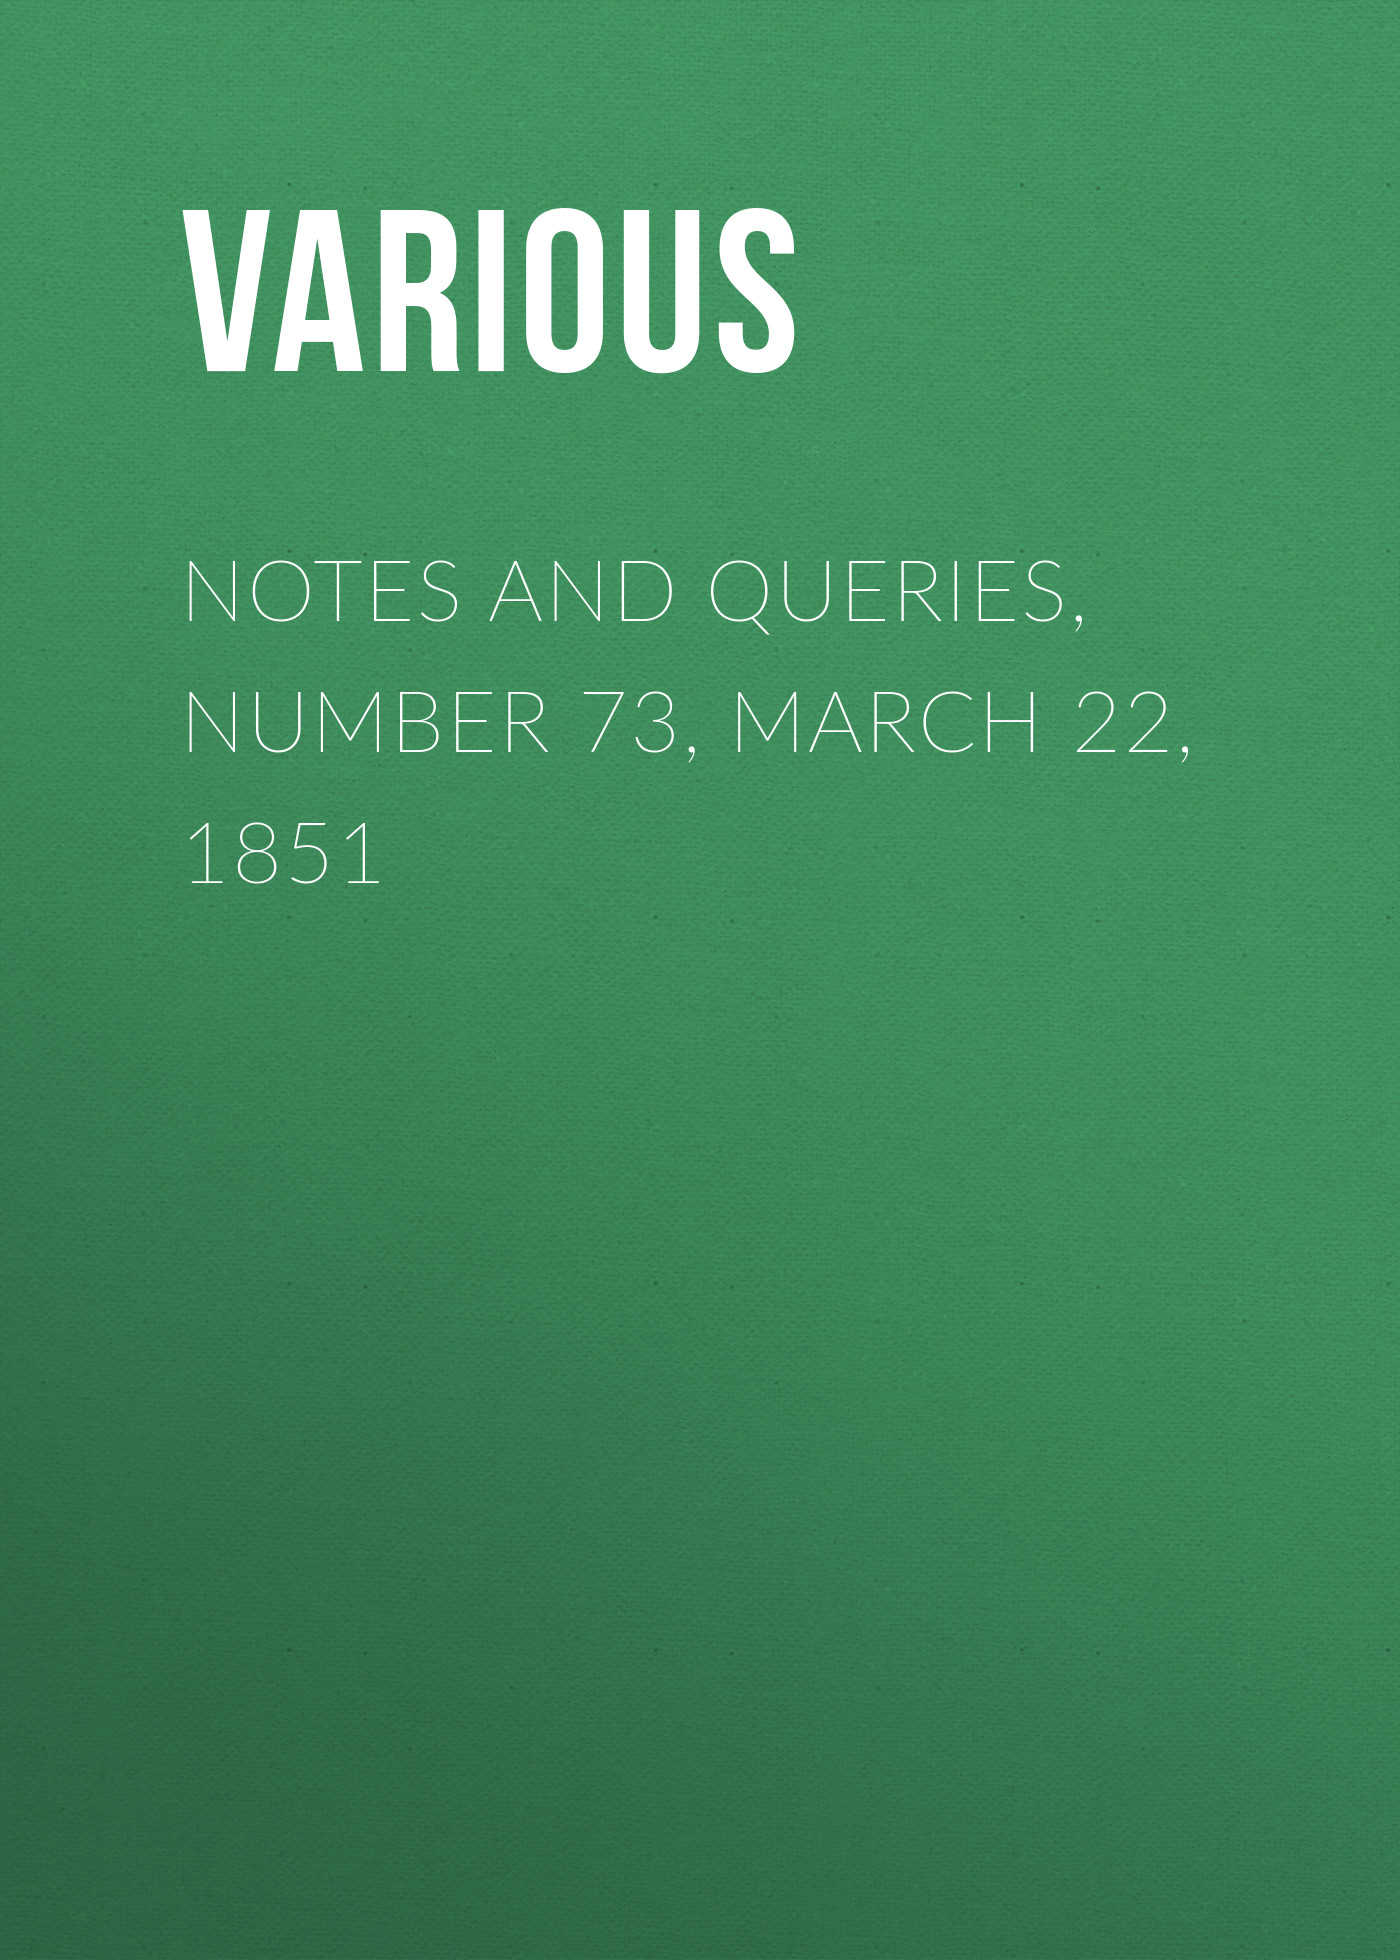 Various Notes and Queries, Number 73, March 22, 1851